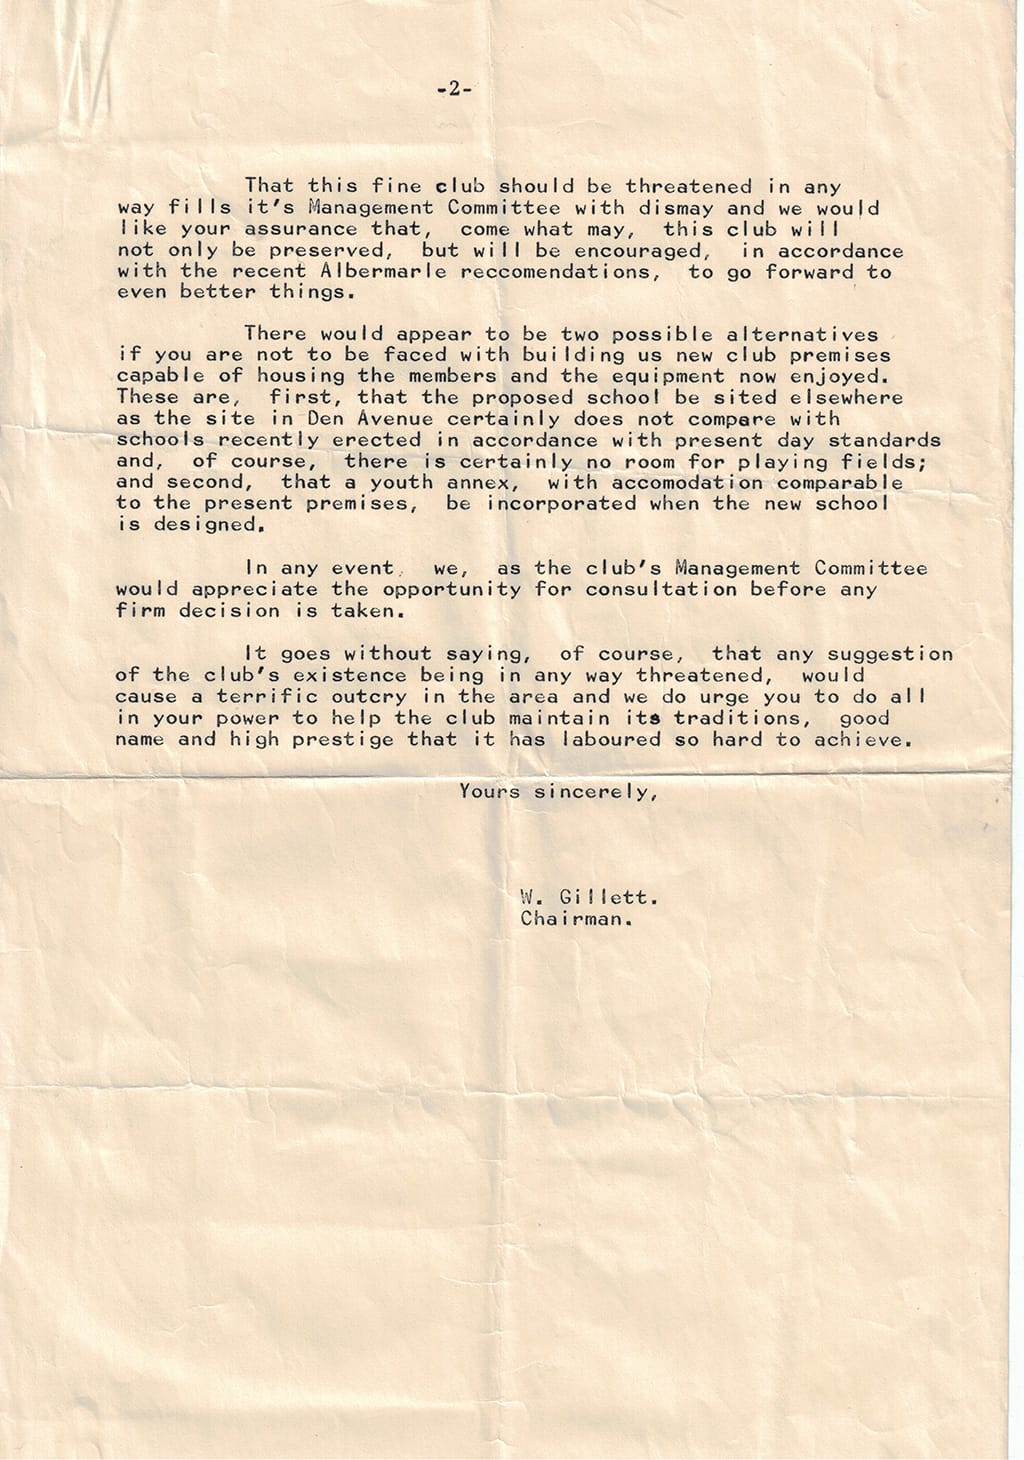 Picture of letter from 1960s (part 2)